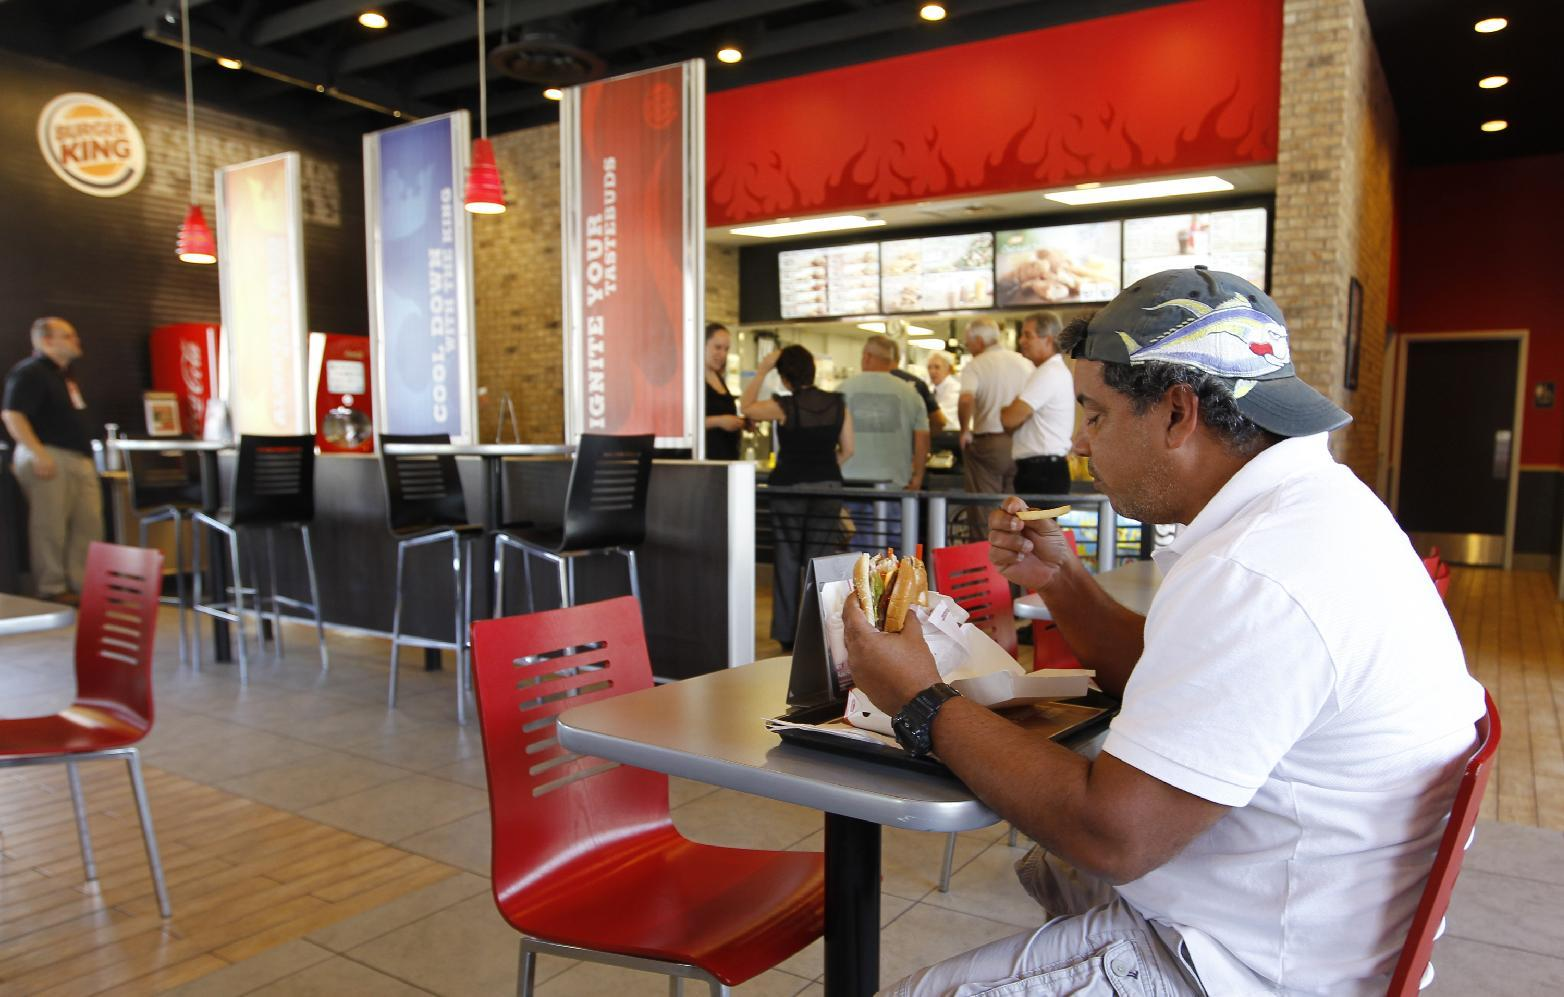 In this March 28, 2012 photo, Norman Garcia eats a burger and fries at a Burger King restaurant in Miami. Burger King launches 10 menu items including smoothies, frappes, specialty salads and snack wraps in a star-studded TV ad campaign. It's the biggest menu expansion since the chain opened its doors in 1954. (AP Photo/Luis M. Alvarez)